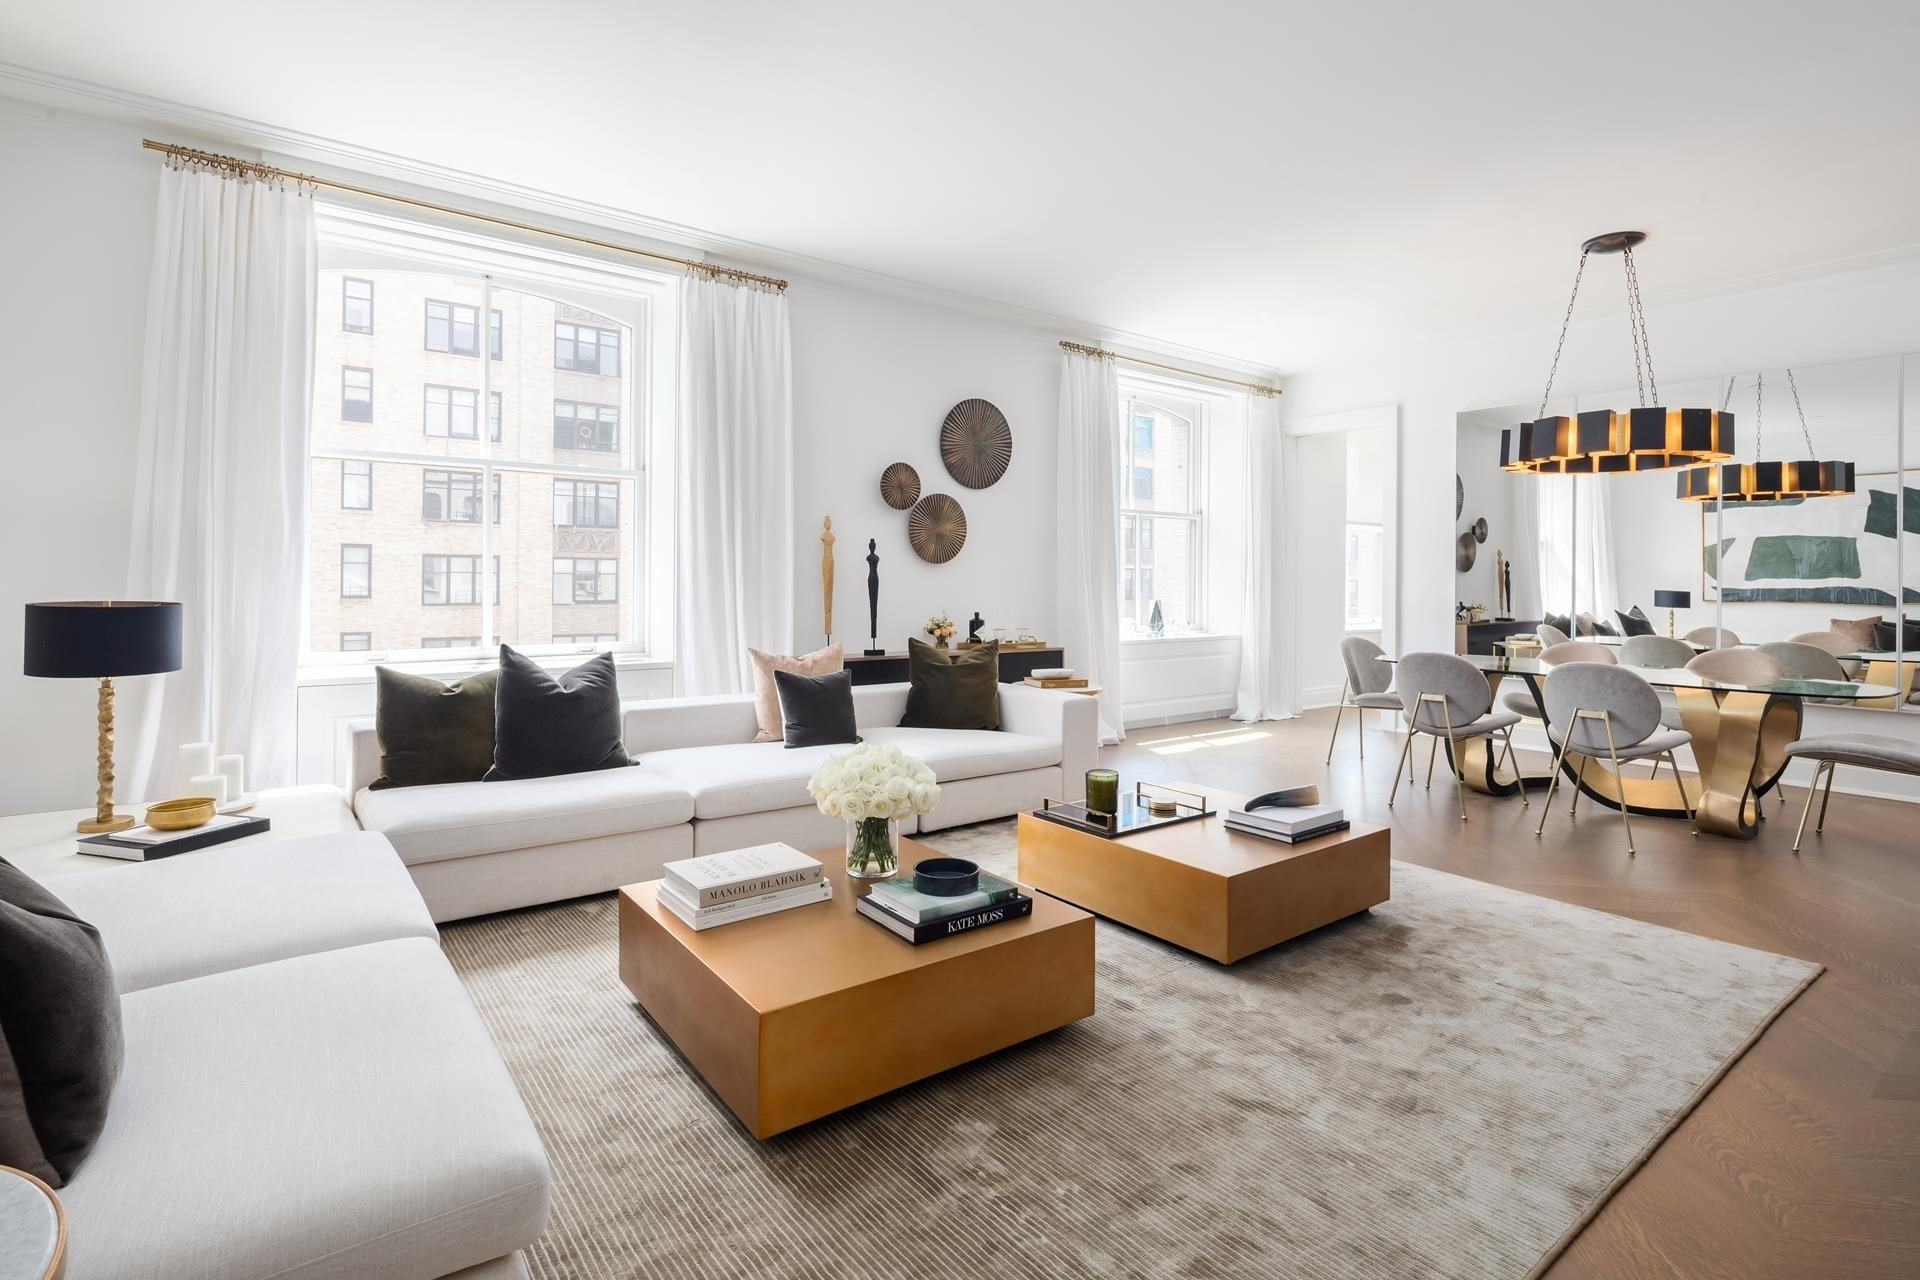 Condominium at The Belnord, 225 West 86th St, 207 Upper West Side, New York